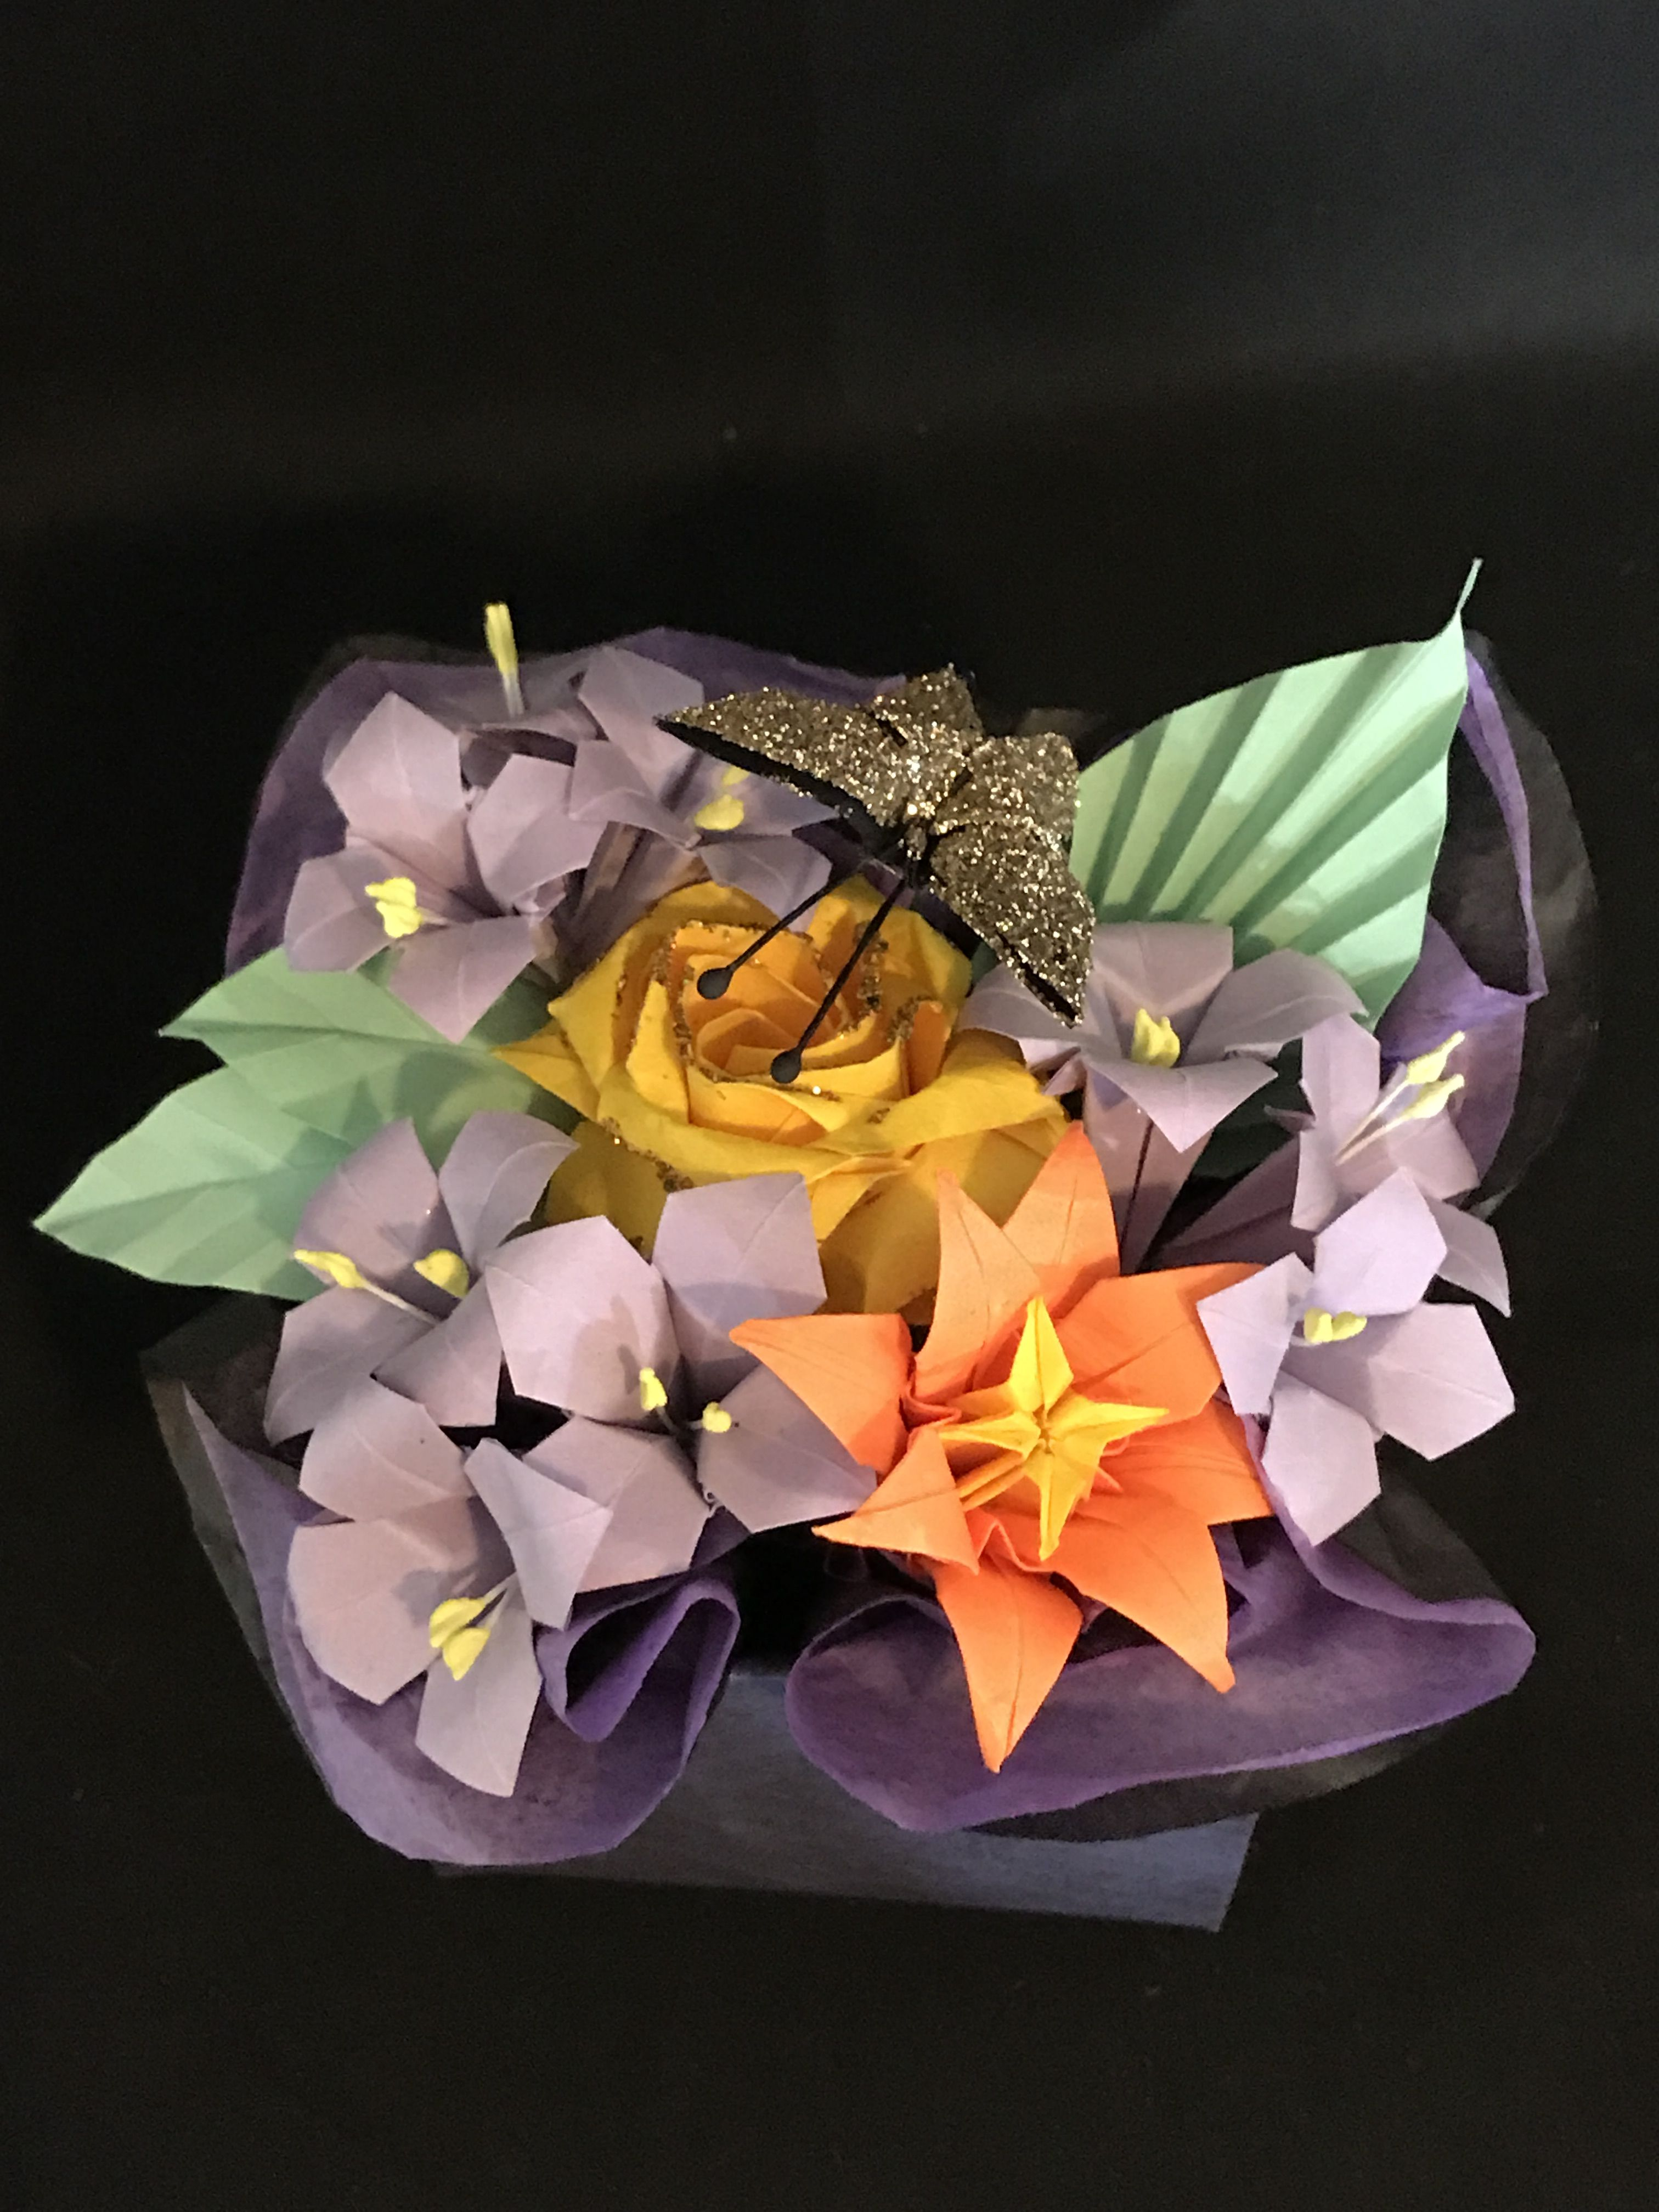 Pin By Misakoplant On Origami Flower Bouquet Pinterest Origami